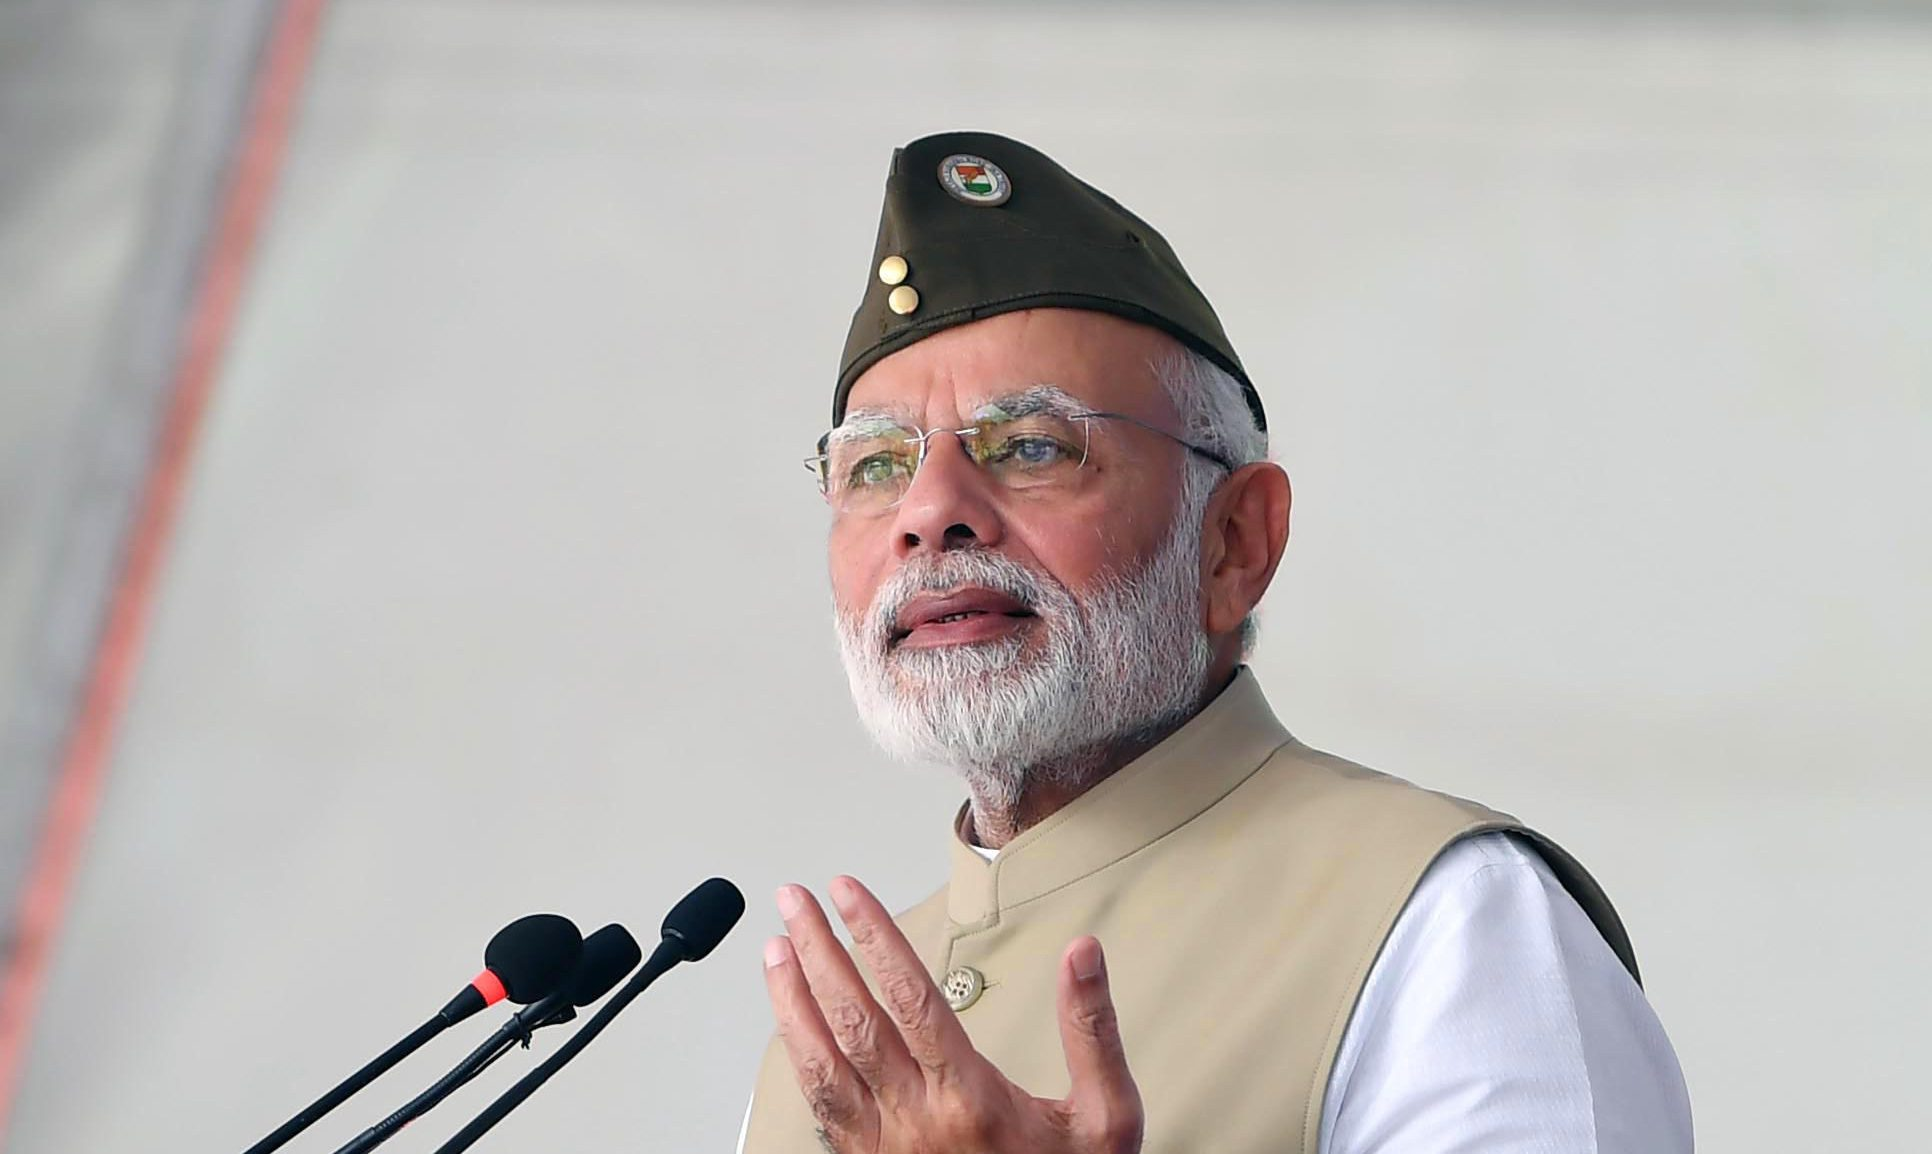 The Prime Minister, Shri Narendra Modi addressing the gathering at a function to commemorate the 75th anniversary formation of the Azad Hind Government, at Red Fort, Delhi on October 21, 2018.